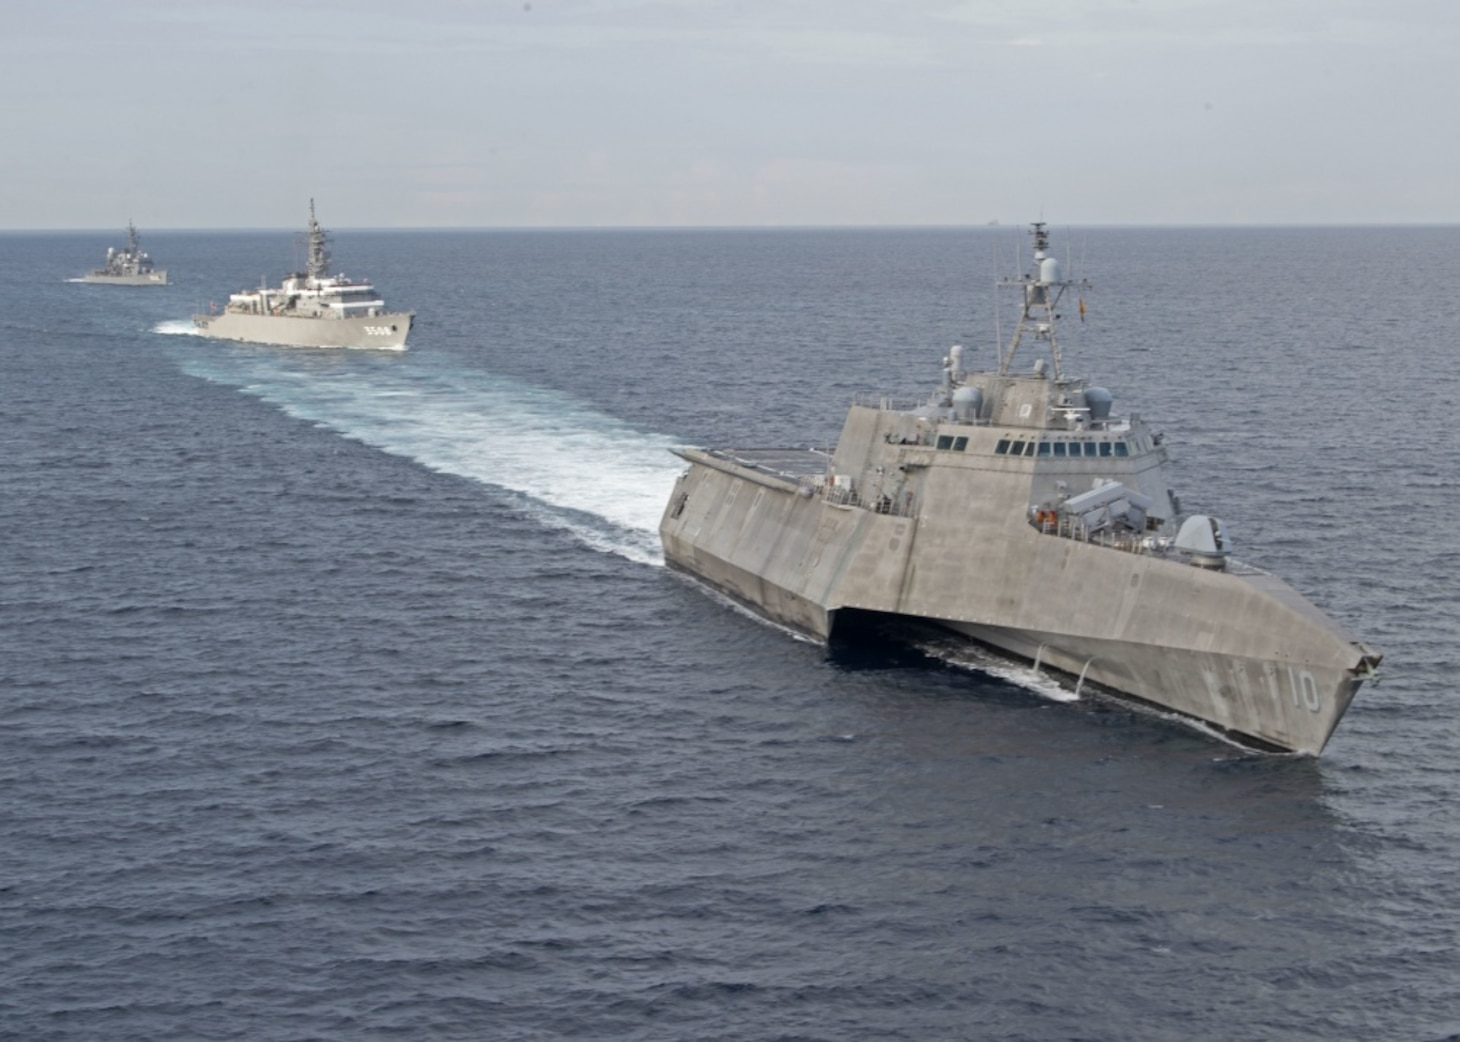 The Independence-variant littoral combat ship USS Gabrielle Giffords (LCS 10), right, exercises with the Japan Maritime Self-Defense Force training ships JS Kashima (TV 3508) and JS Shimayuki (TV 3513) in the South China Sea, June 23, 2020. Gabrielle Giffords, part of Destroyer Squadron Seven, is on a rotational deployment, operating in the U.S. 7th Fleet area of operations to enhance interoperability with partners and serve as a ready-response force.